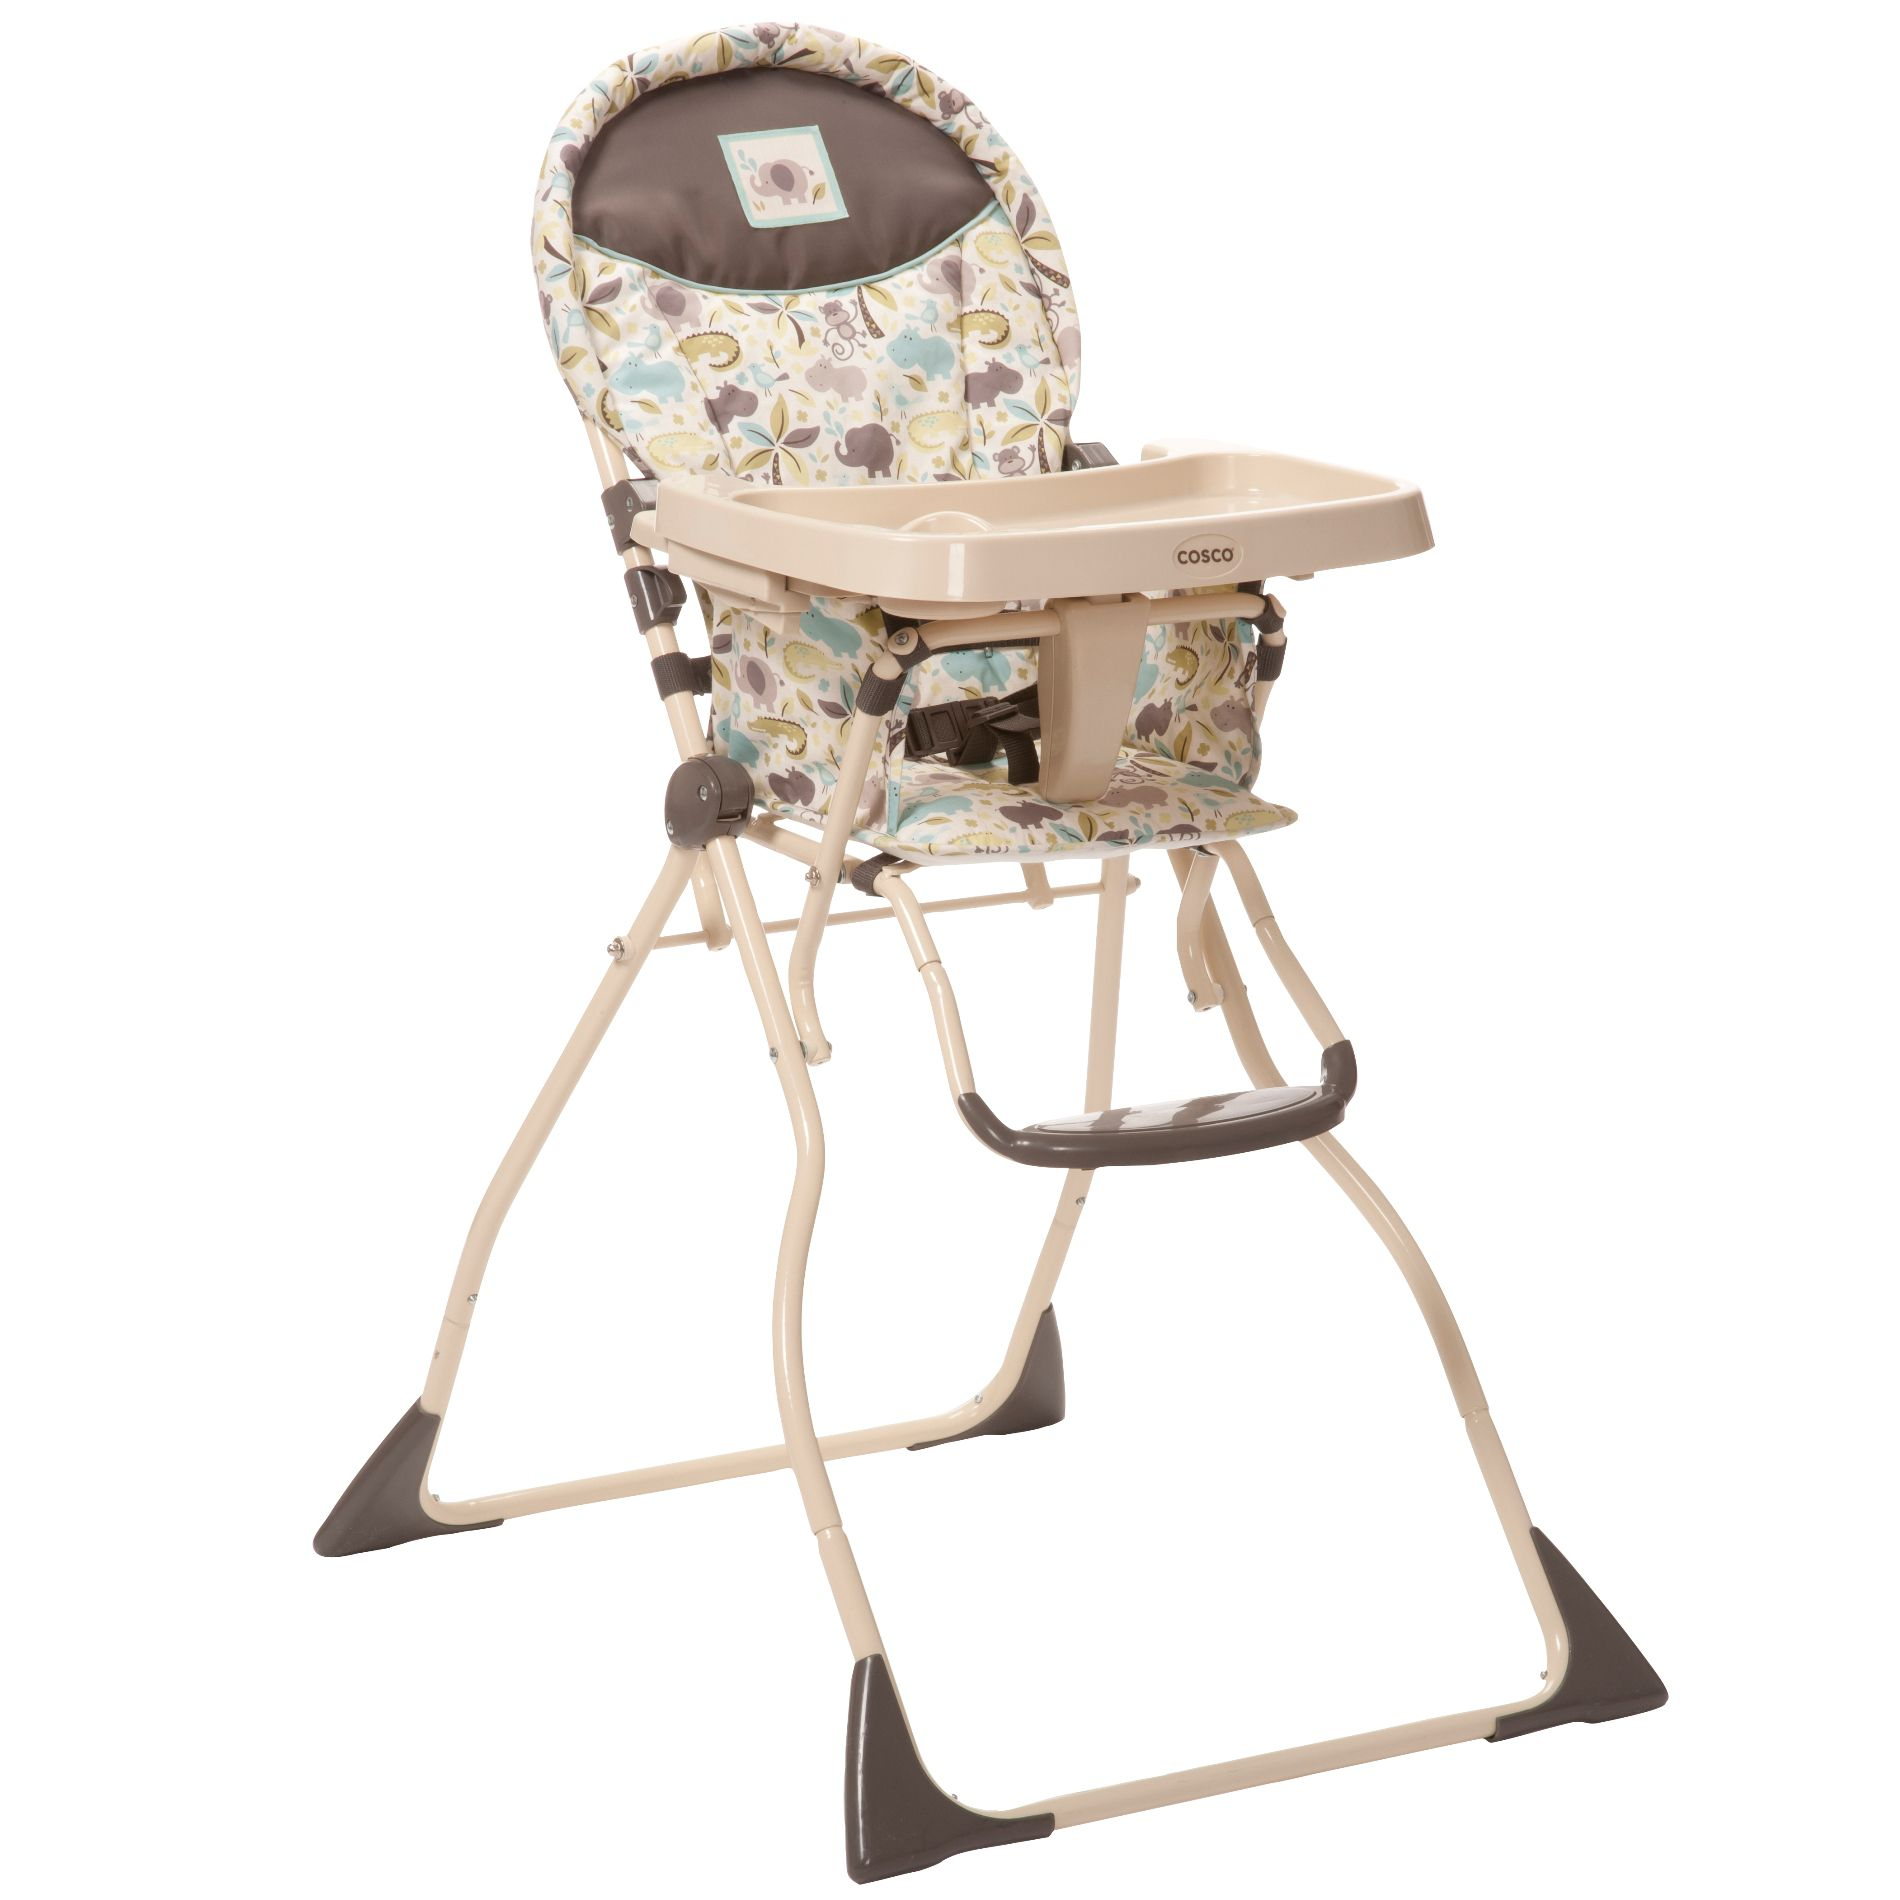 how to fold up a cosco high chair pelton and crane dental super safari compact slim baby